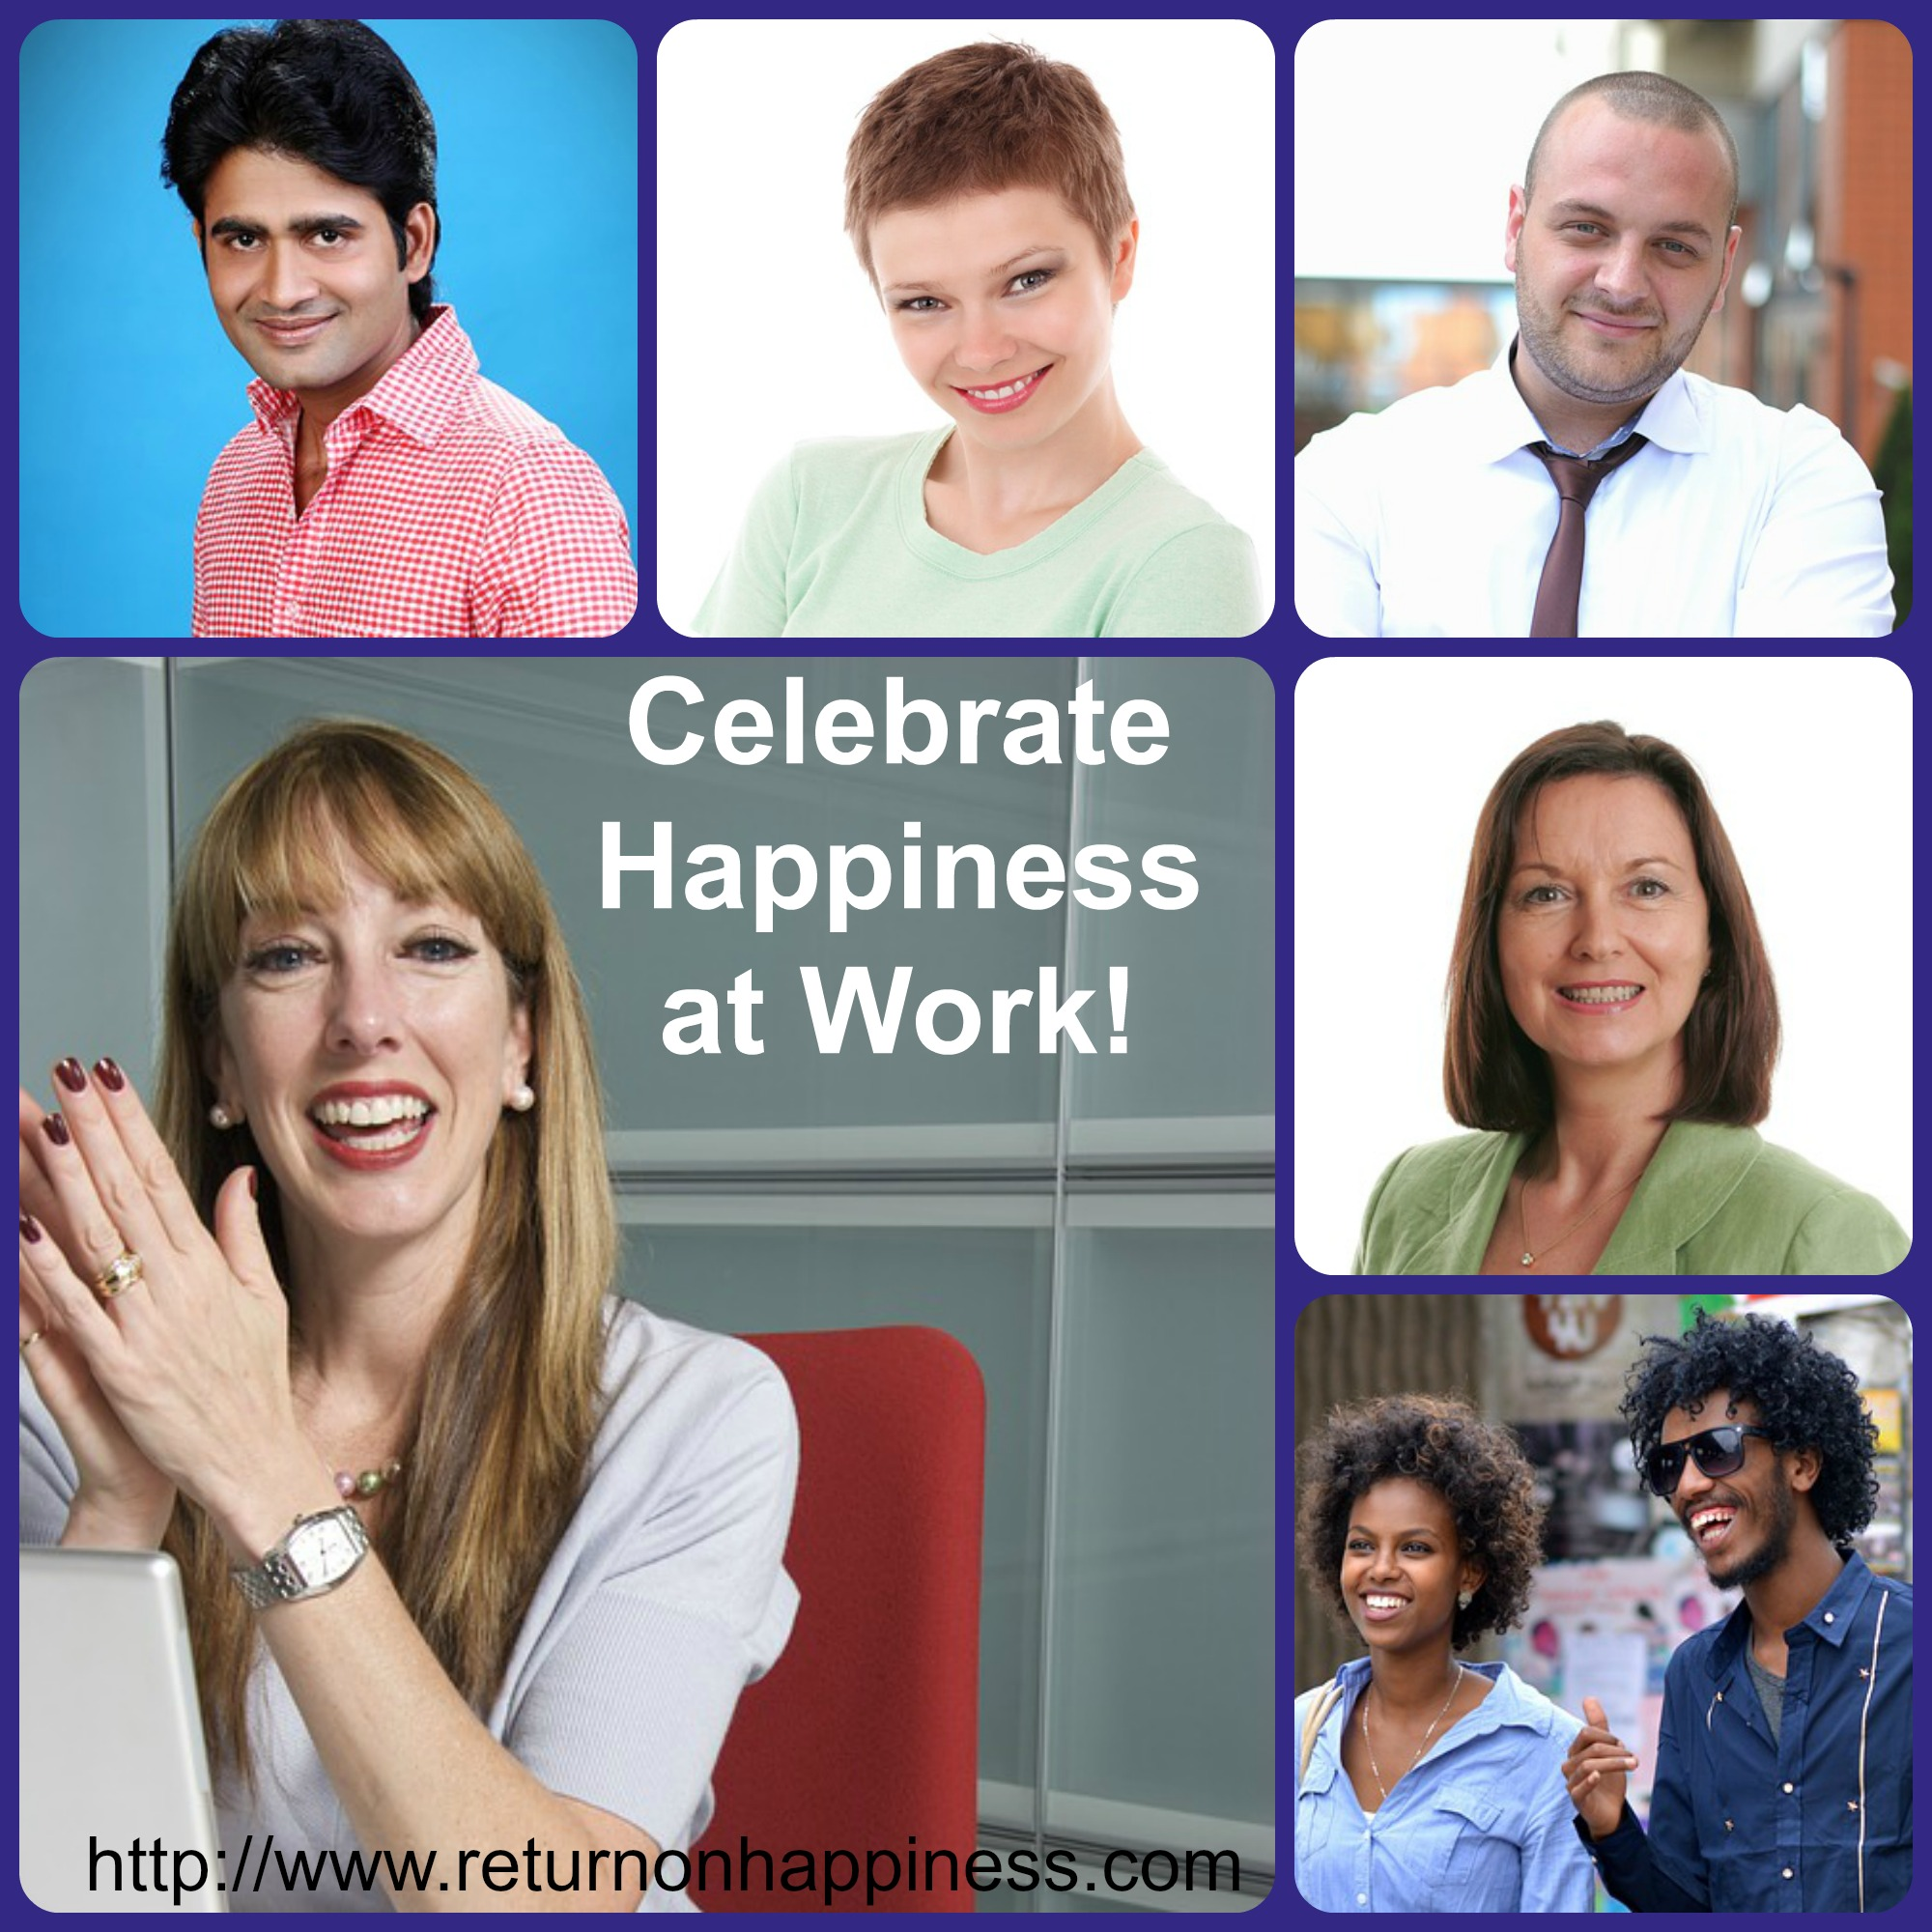 All over the world people will be hosting Positive Flash Mobs, and posting pictures to social media. They will be sharing how they will be celebrating happiness, they'll be taking challenges and doing kind acts for others. Oh and so much more.